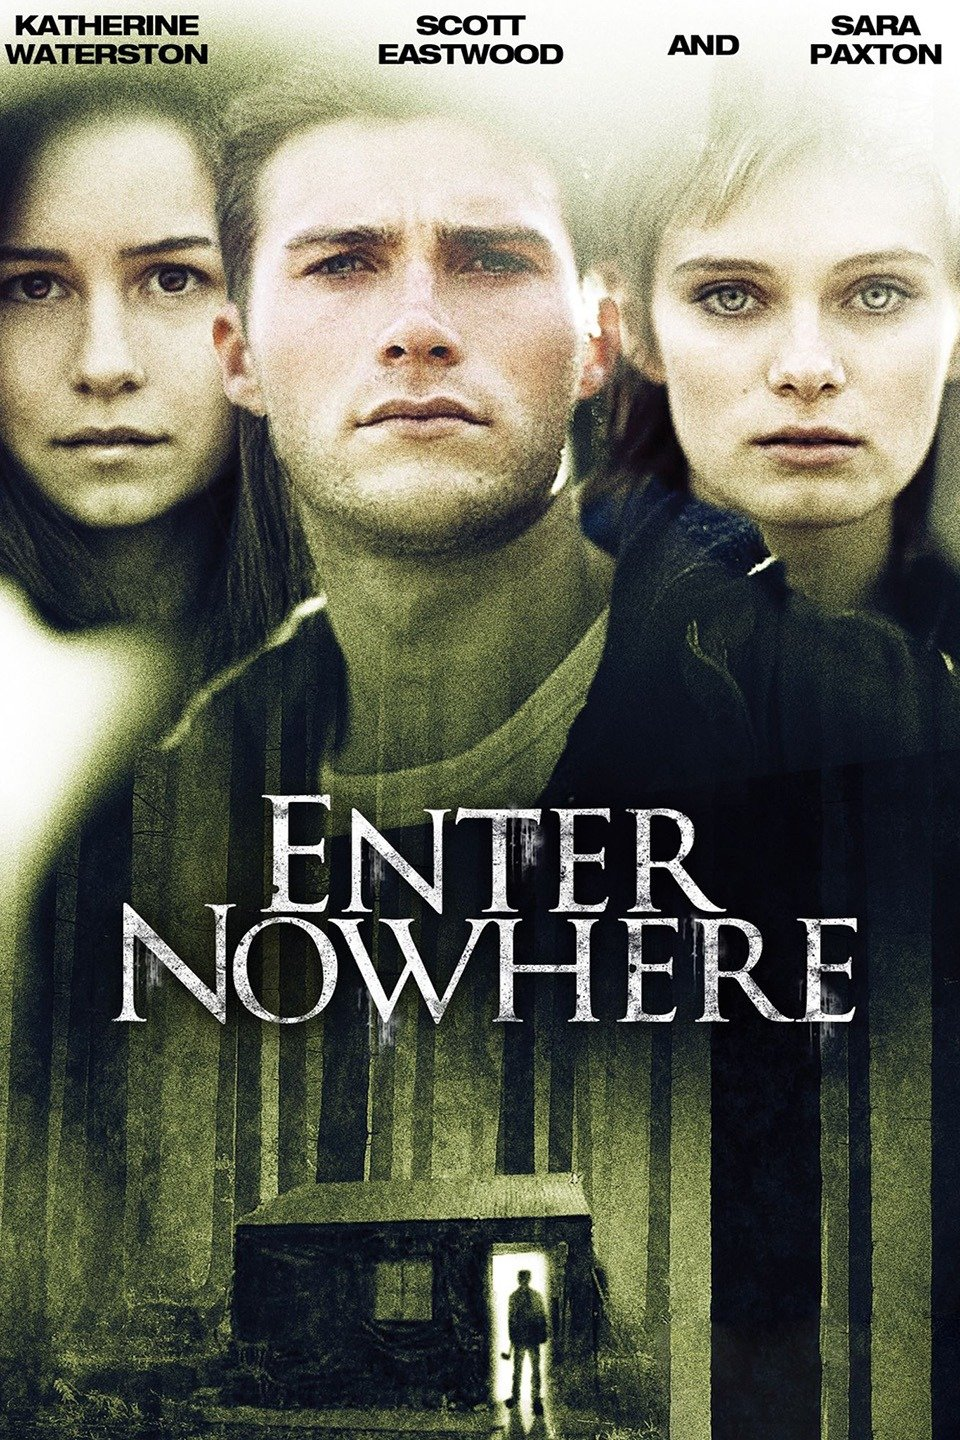 Enter Nowhere 2011 Full Movie Download BluRay 600MB